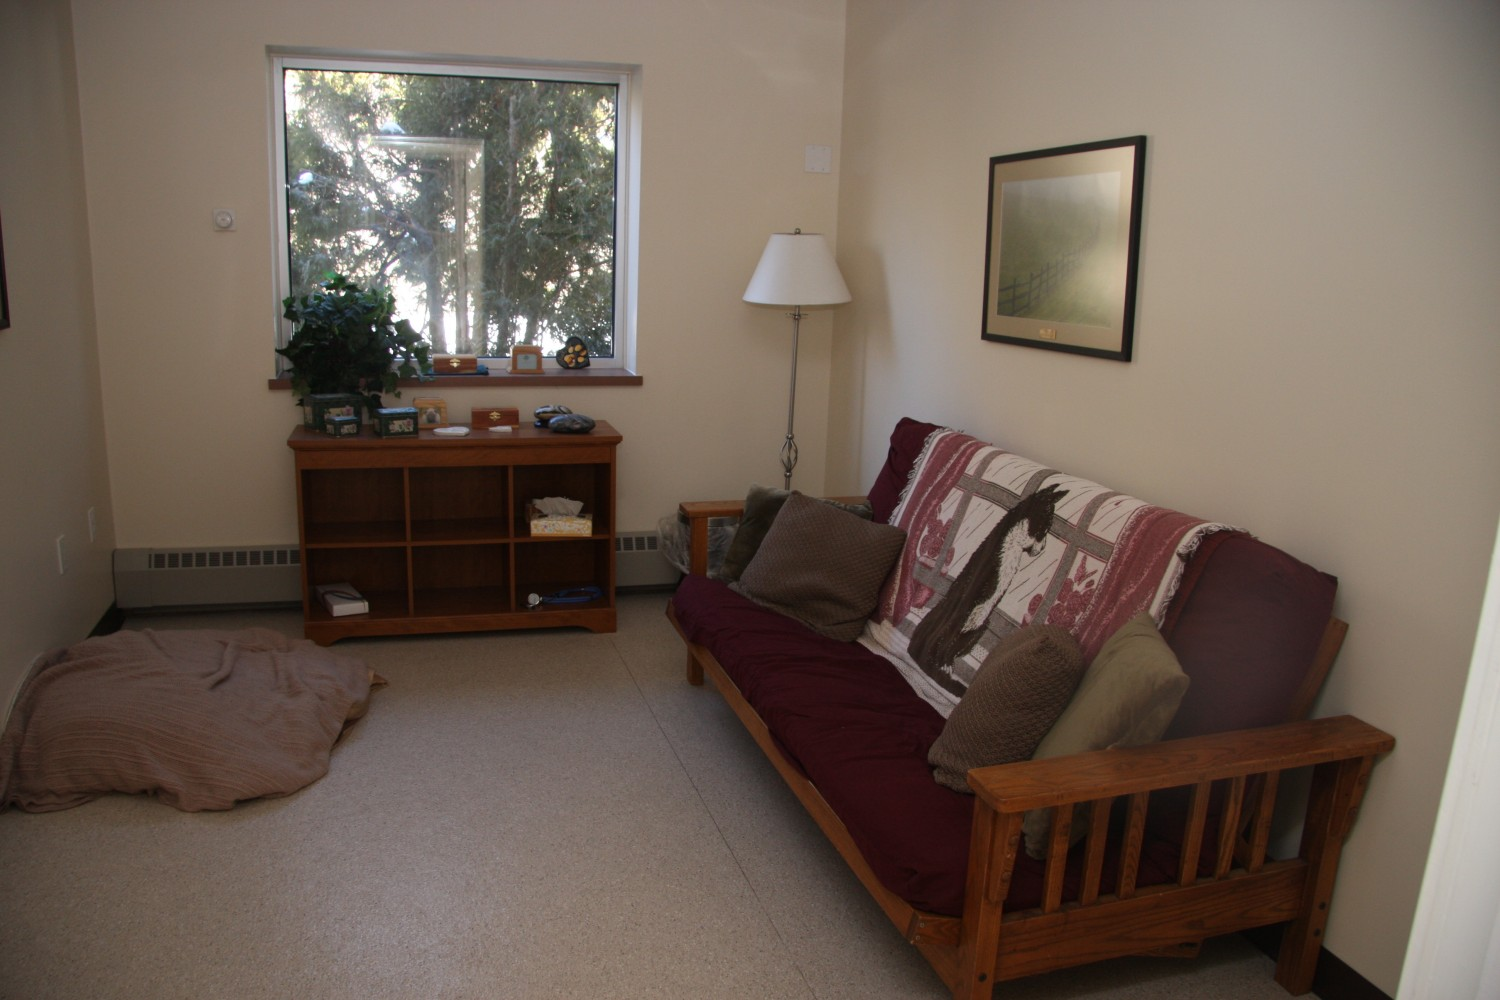 Litchfield Veterinary Hospital - Litchfield, CT - Comfort Room